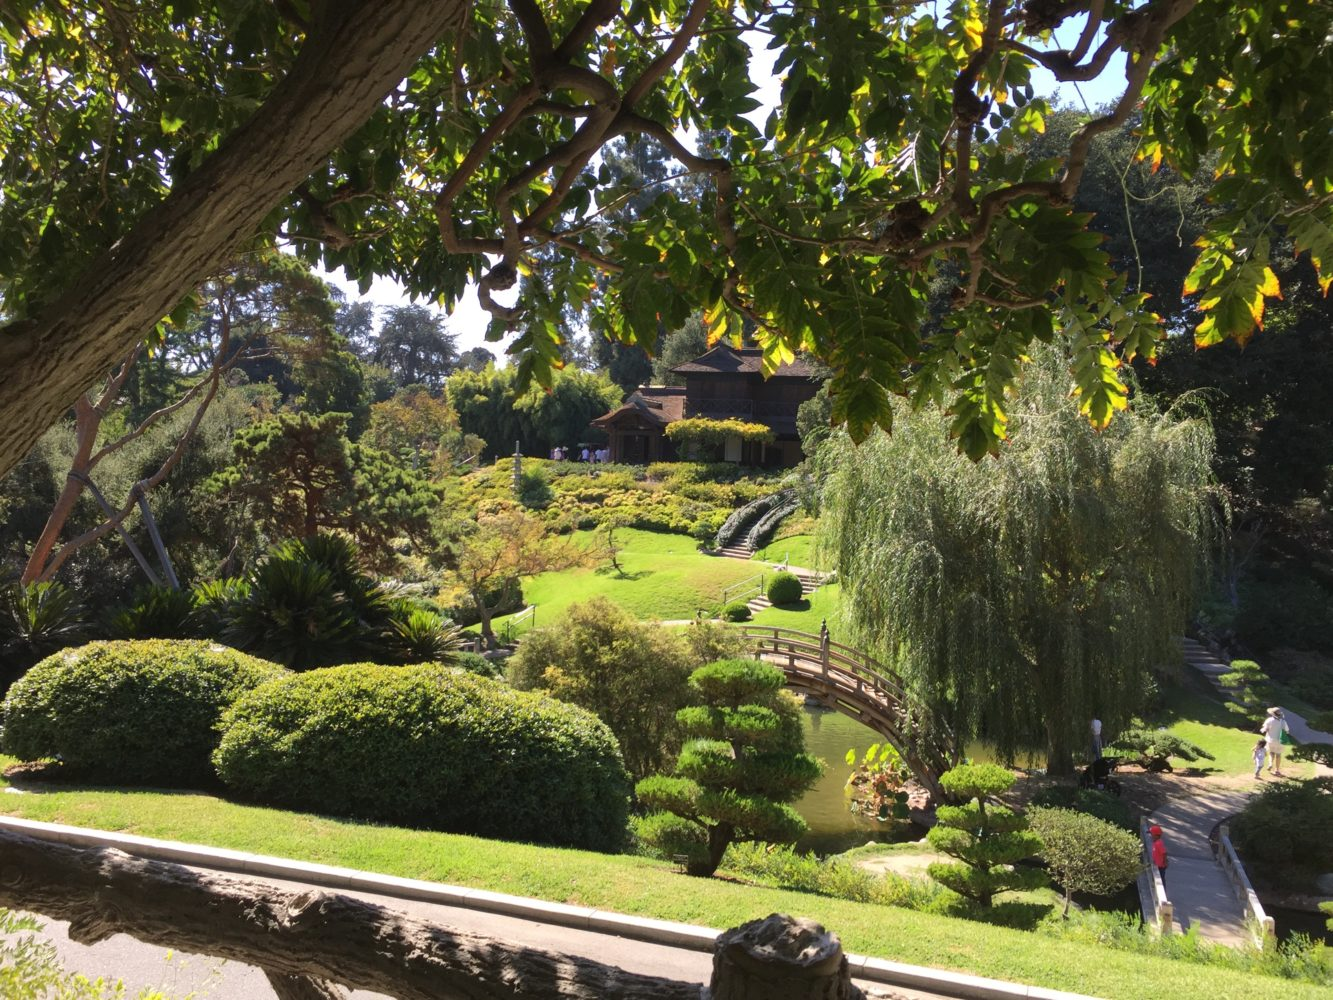 The best toddler approved parks and gardens in LA.